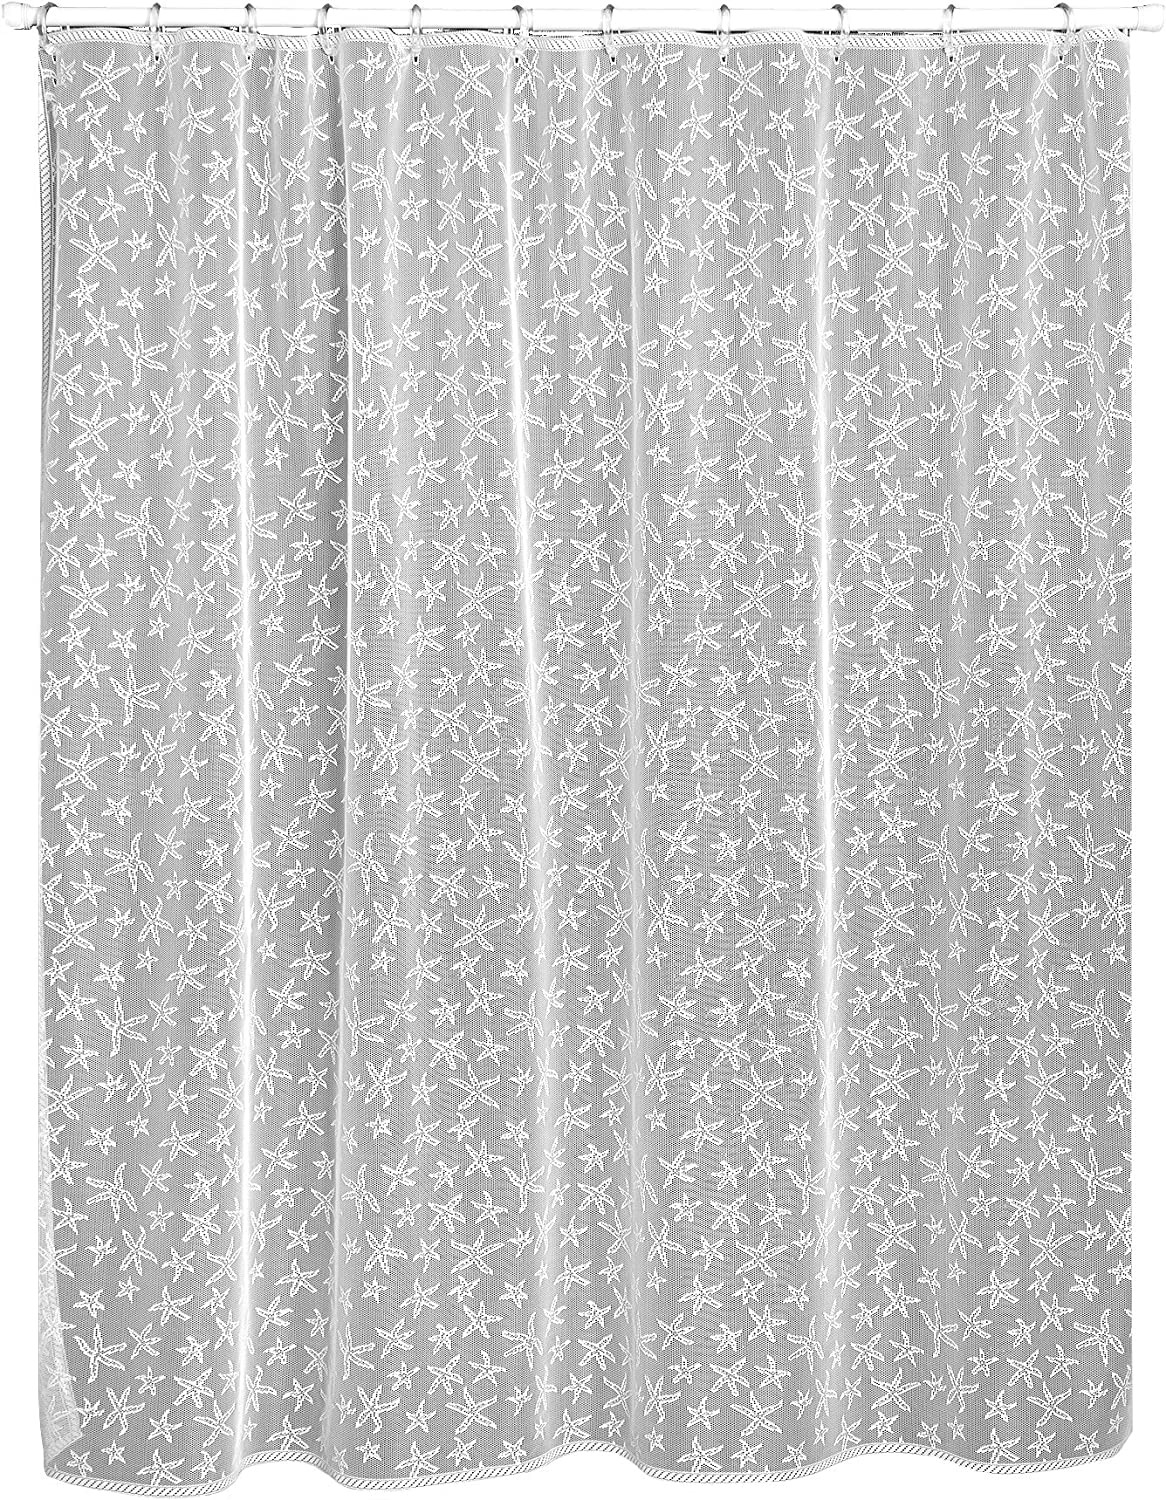 Heritage Lace Starfish Shower Curtain, 72 by 72-Inch, White